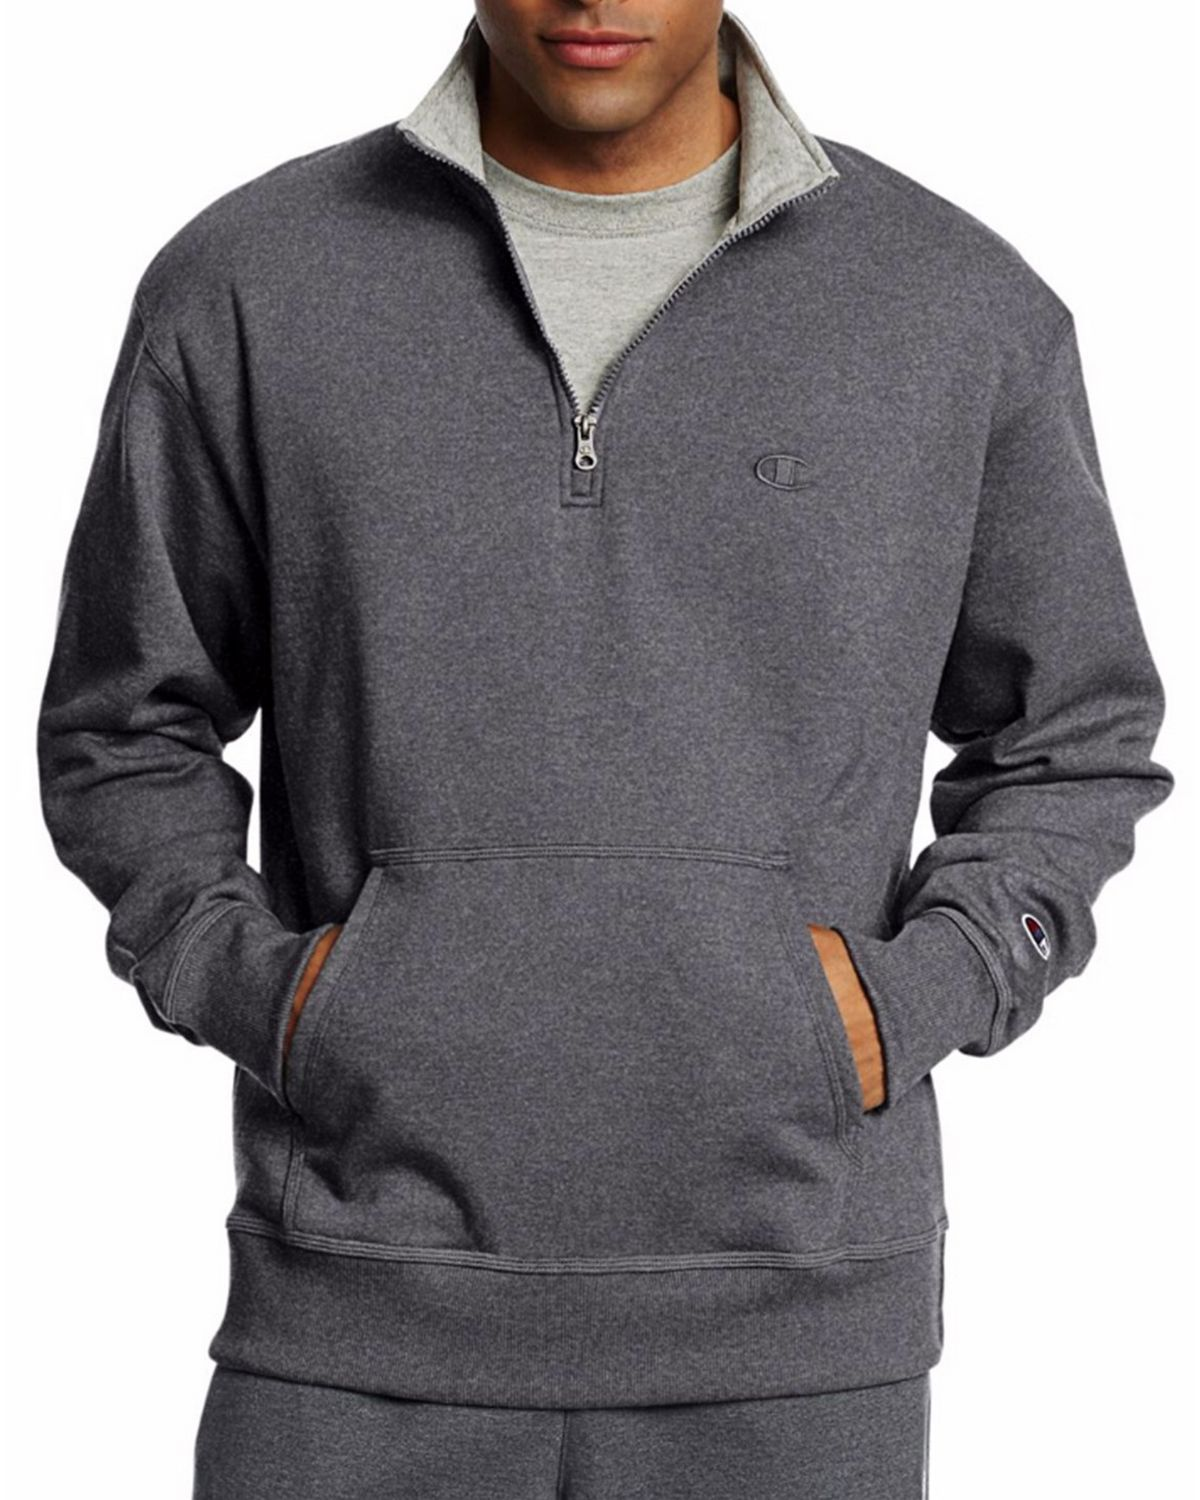 Champion S0896 Mens Fleece 1/4 Zip Pullover - Granite Heather - XL S0896